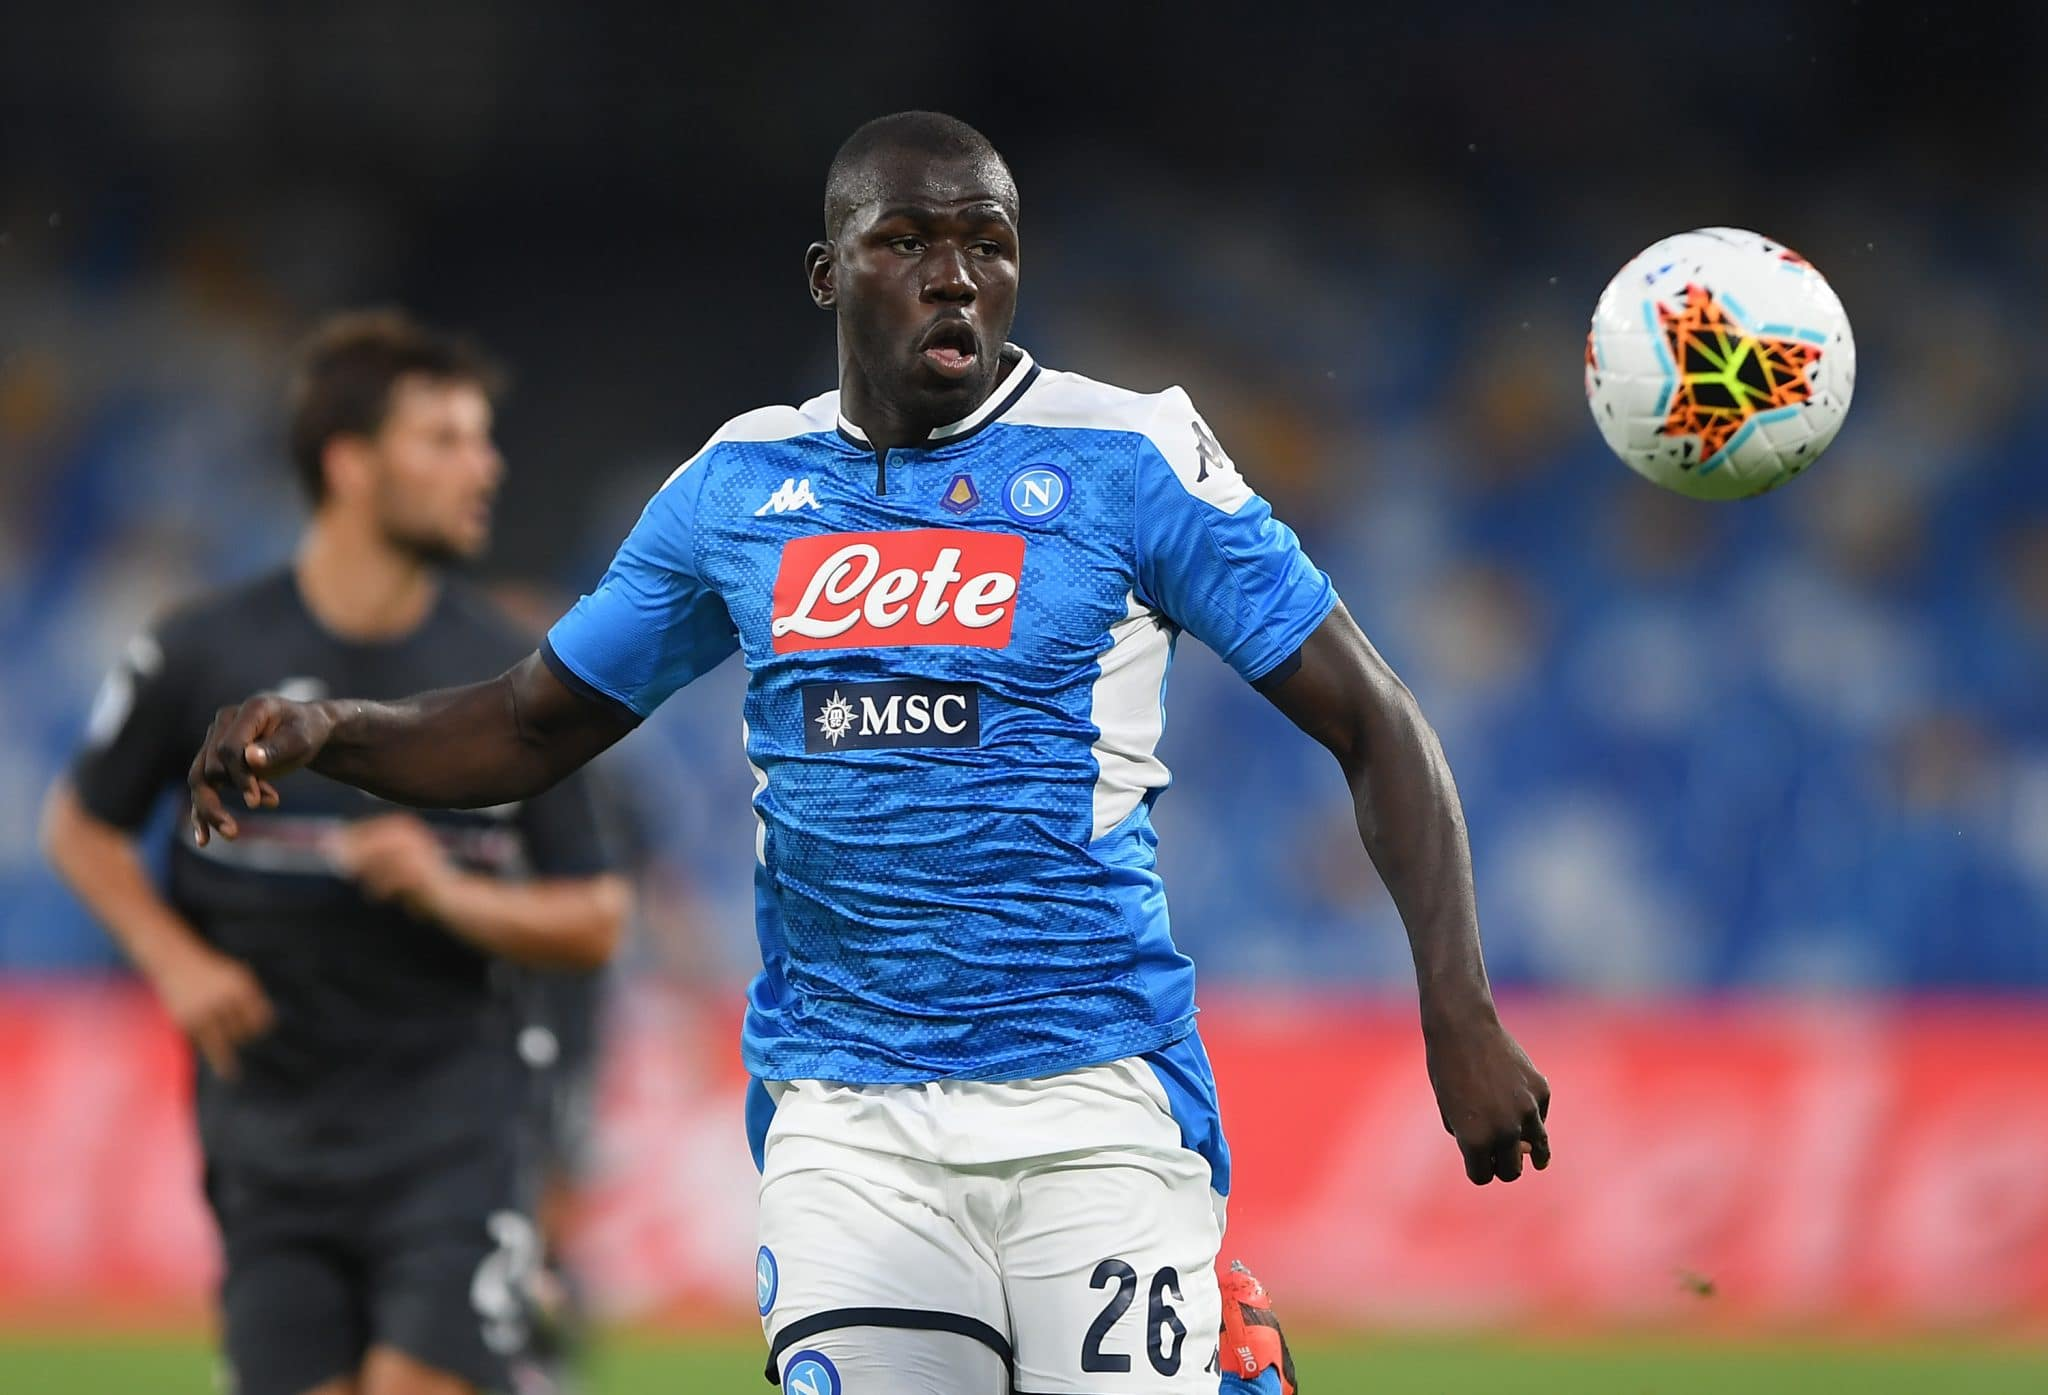 Premier League Transfer News Today: Could Koulibaly finally move to the Premier League this summer?